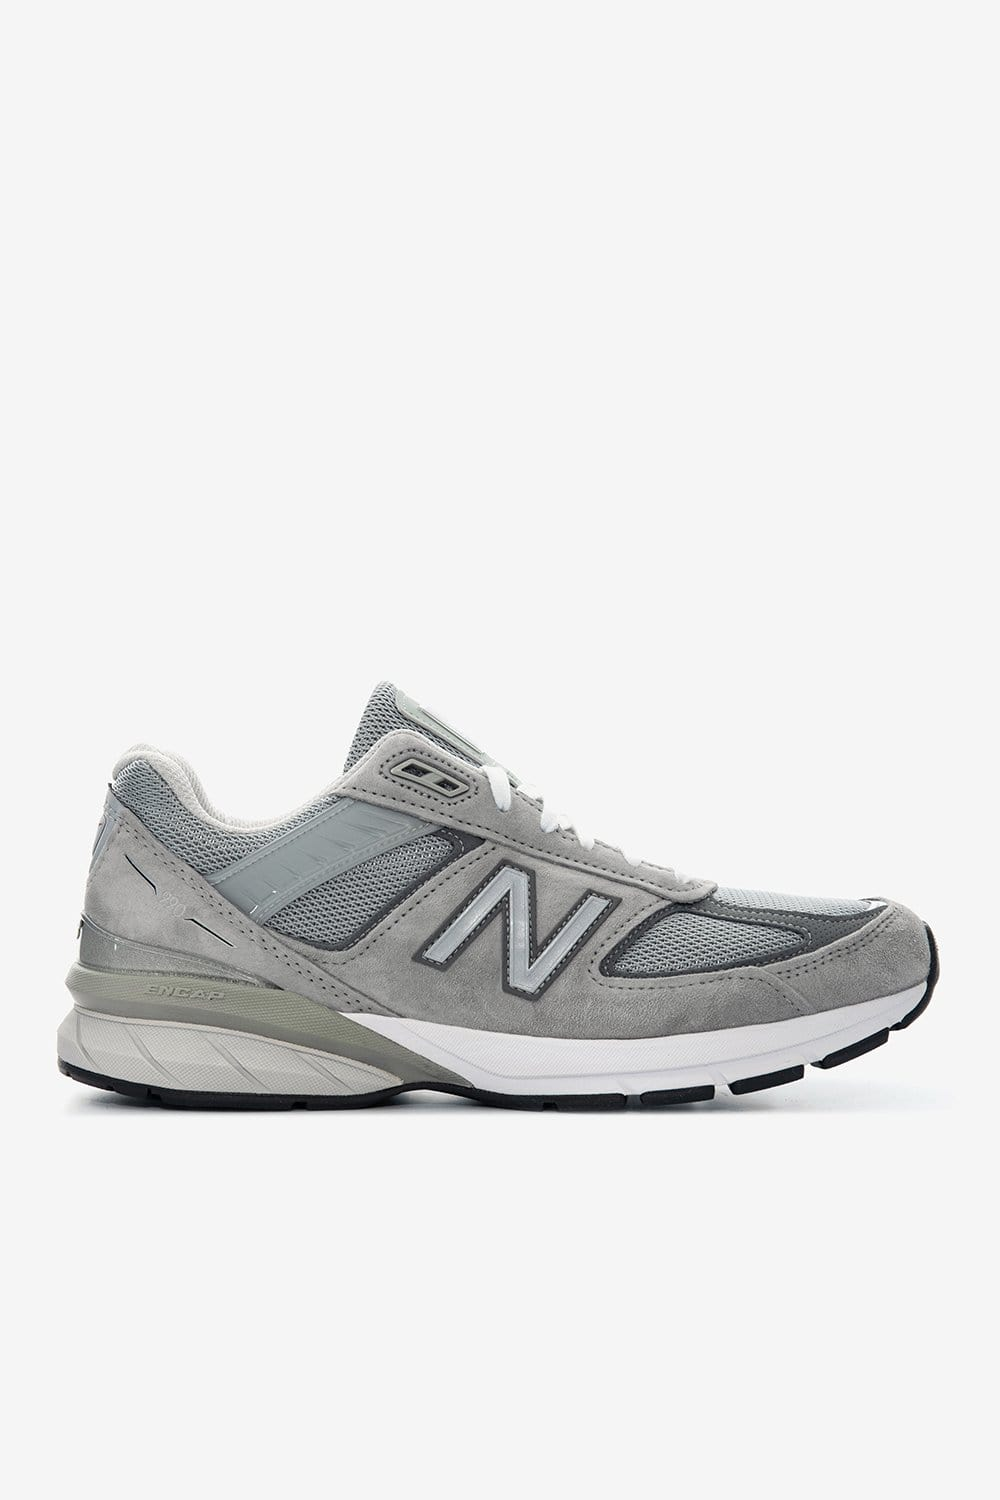 New Balance Footwear M990 USA